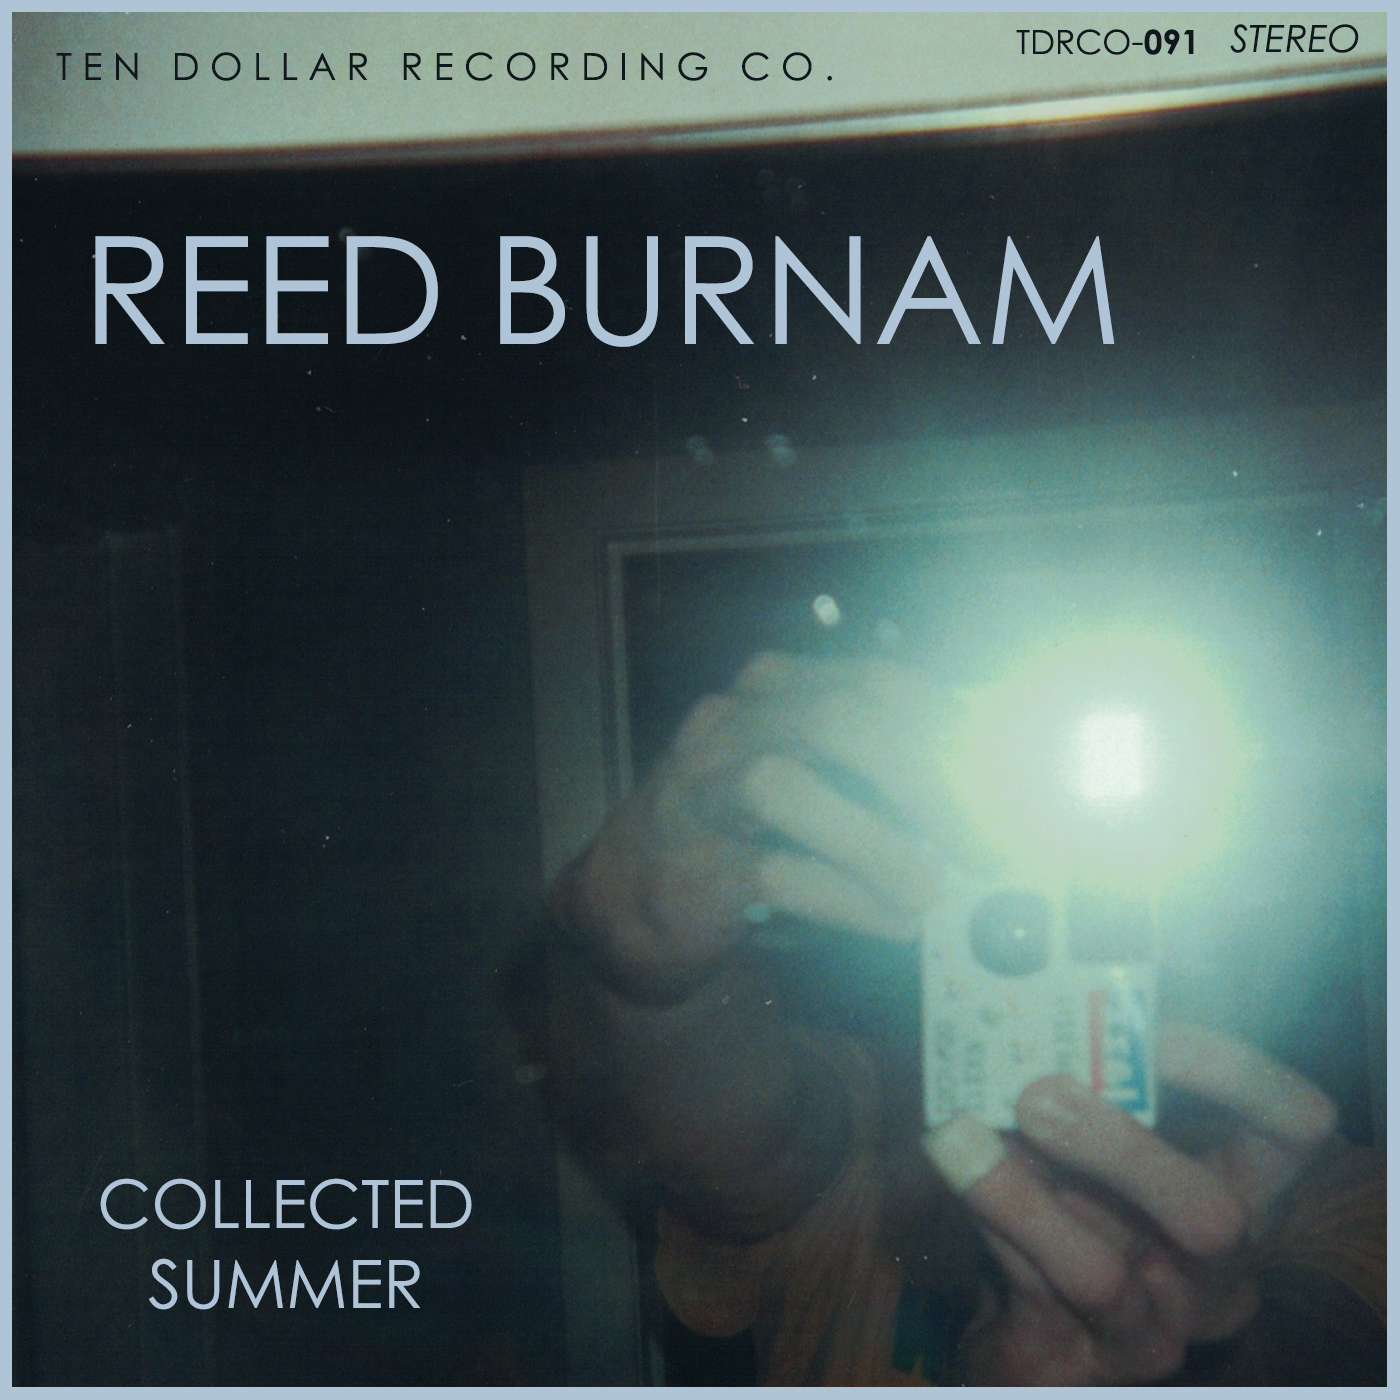 Reed Burnam - Collected Summer (Single)